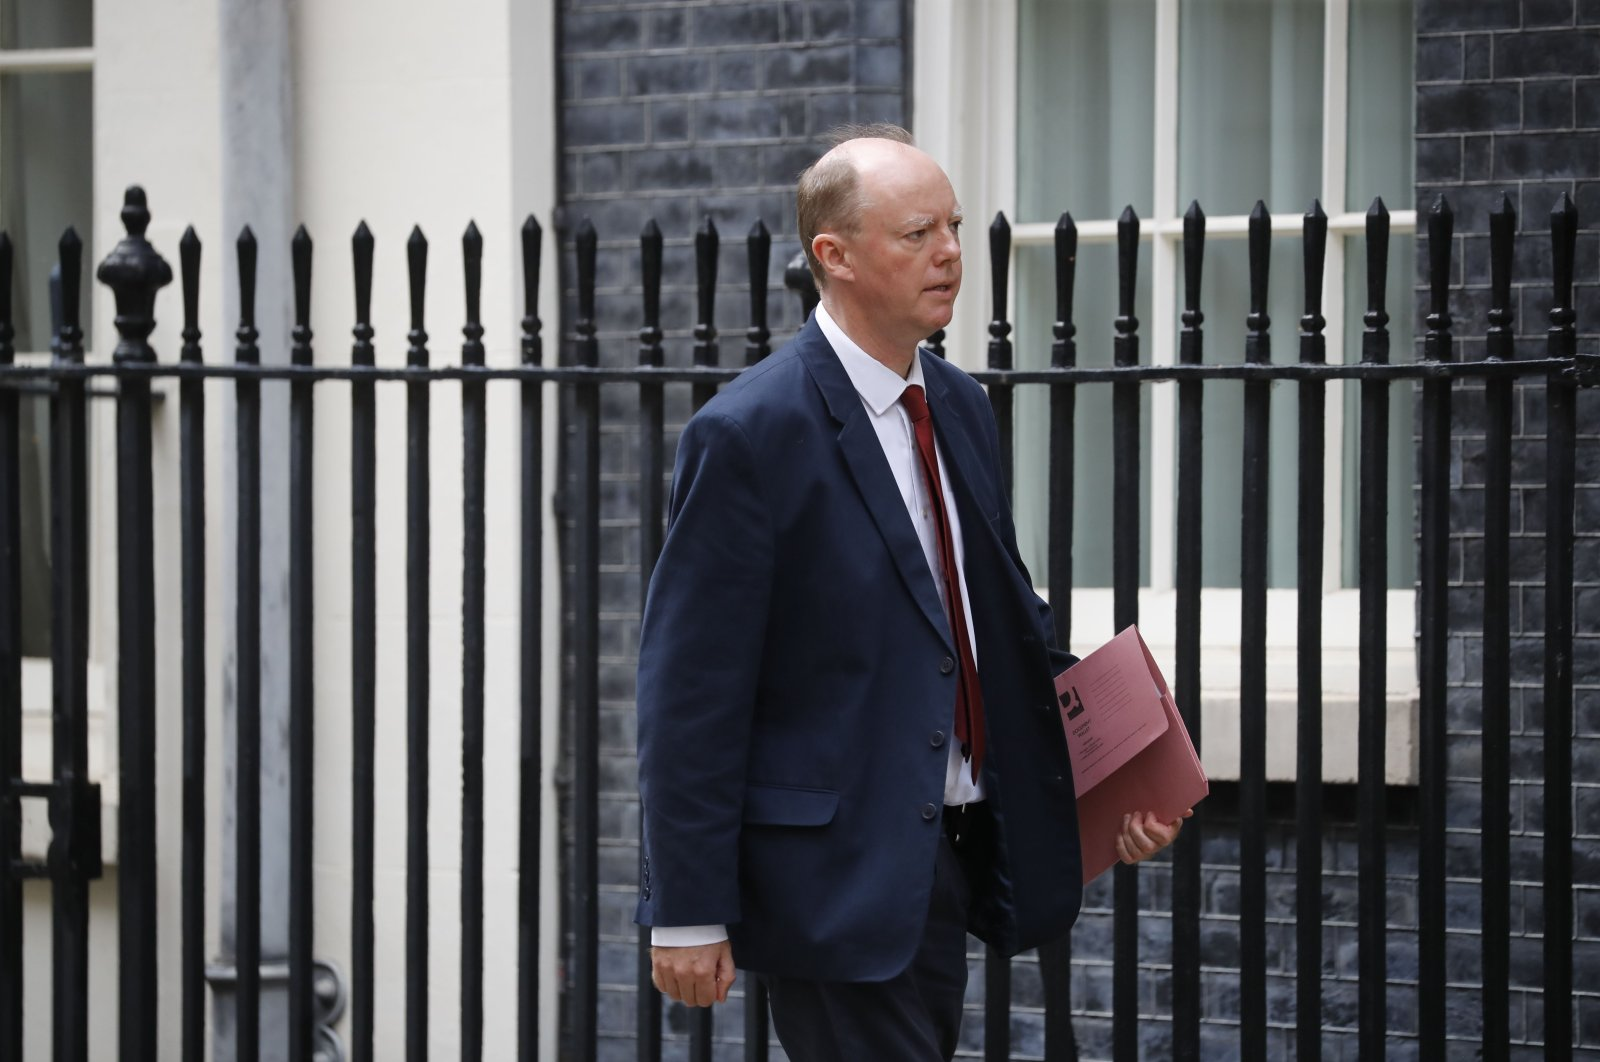 Britain's Chief Medical Officer for England Chris Whitty arrives at 10 Downing Street in London, Sept. 8, 2020. (AFP Photo)